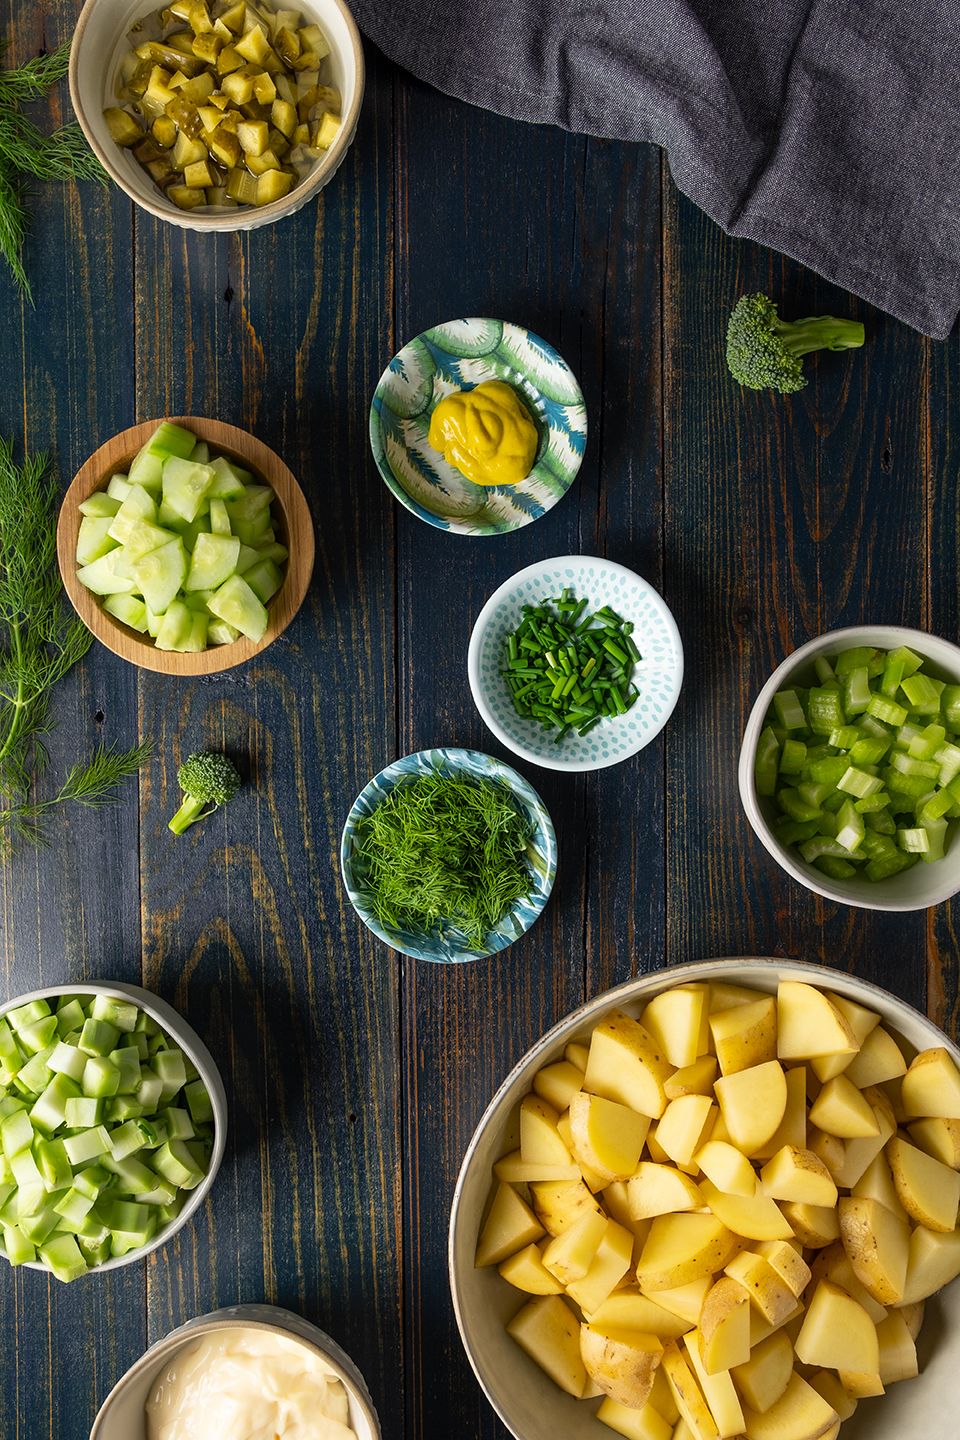 retouched ingredients for potato and broccoli salad in decorative bowls of various sizes